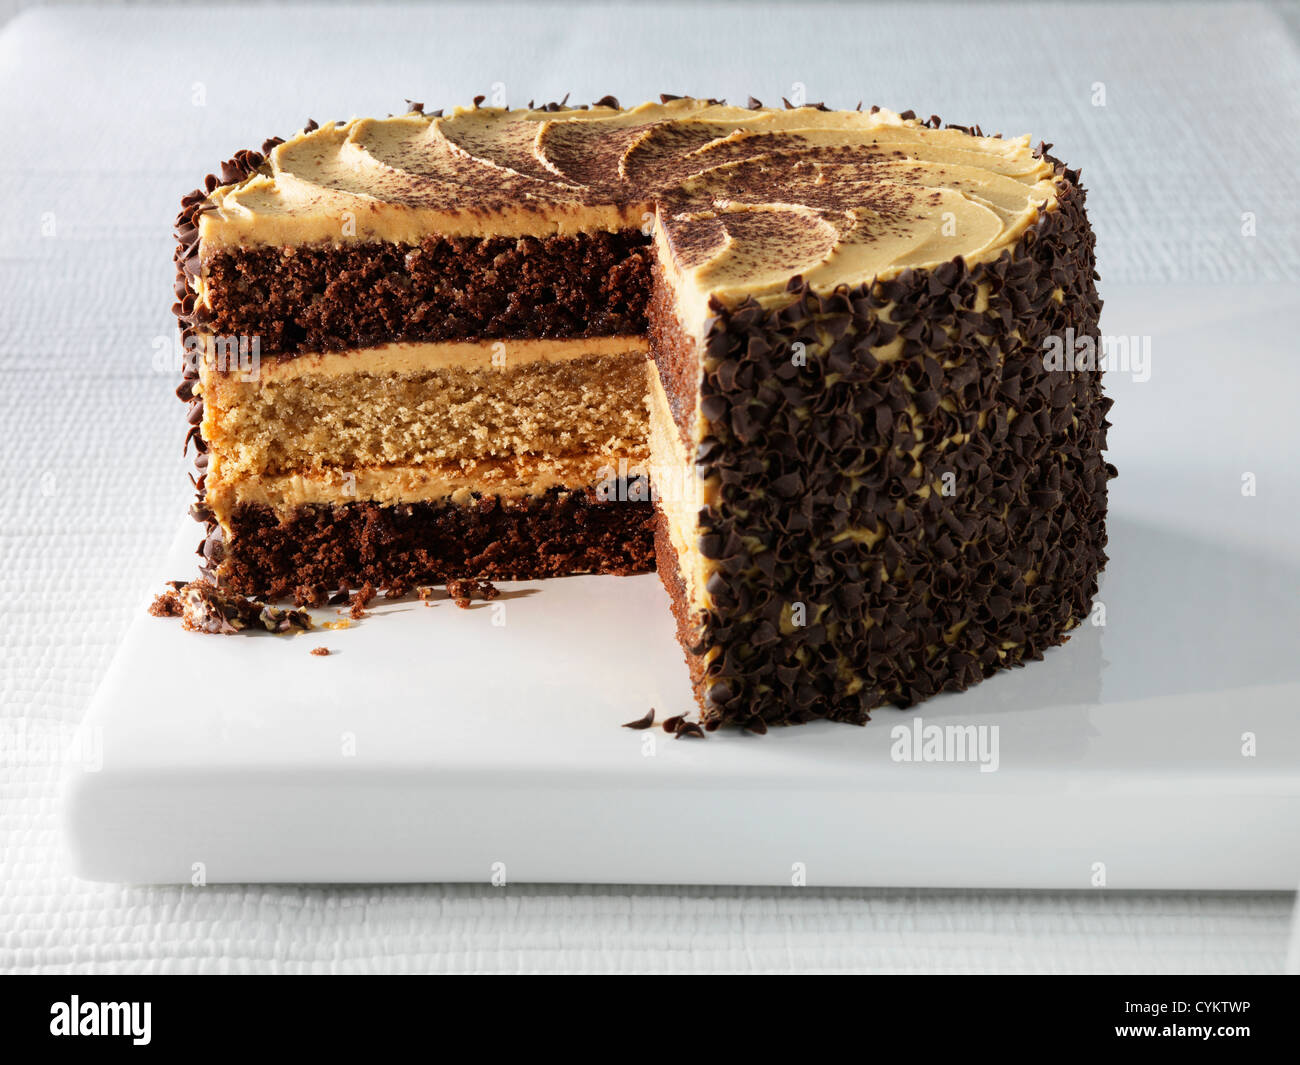 Plate Of Cappuccino Layer Cake